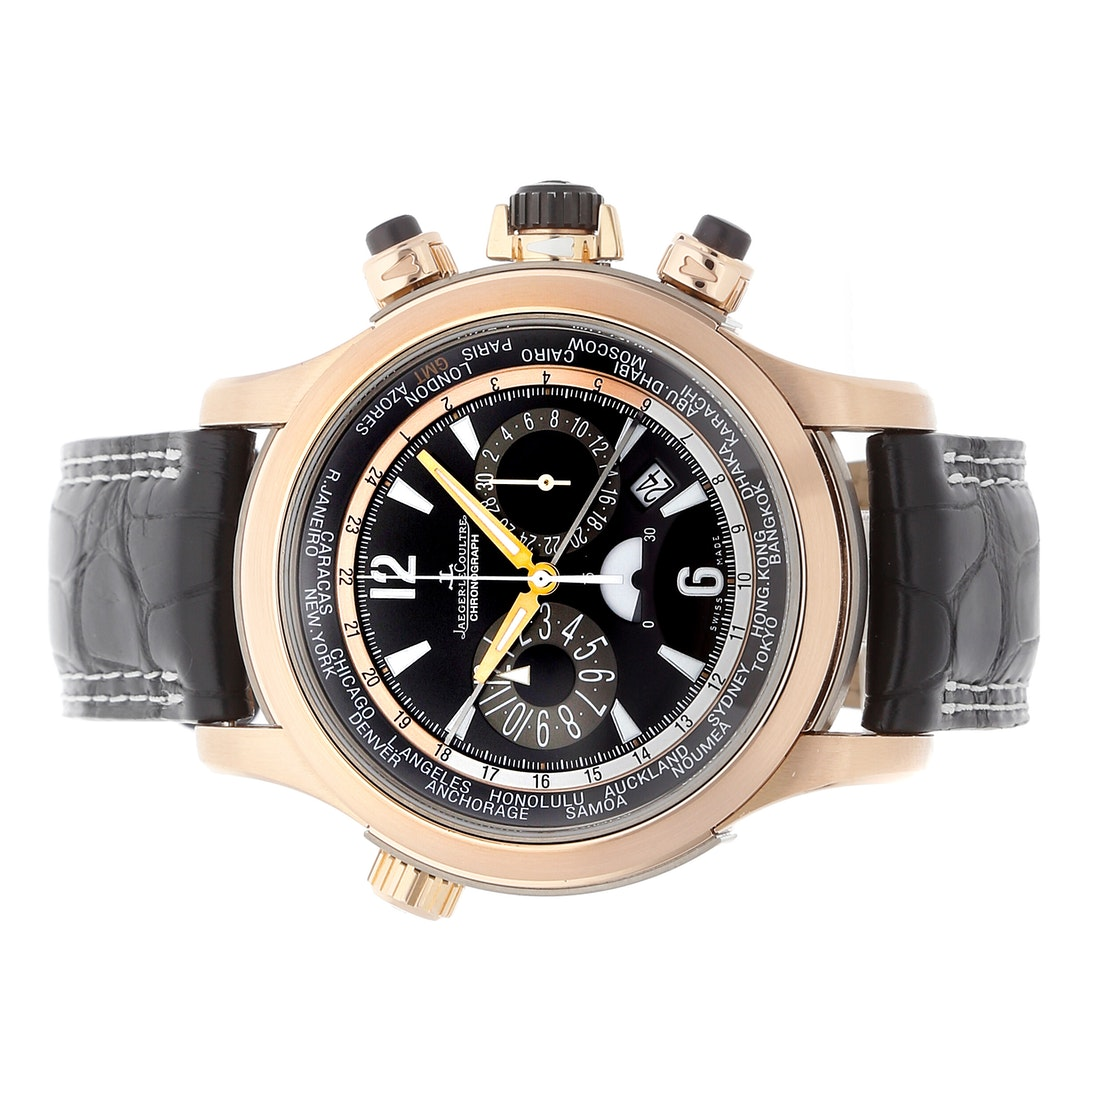 Jaeger-LeCoultre Master Compressor Extreme World Chronograph Limited Edition Q176247U